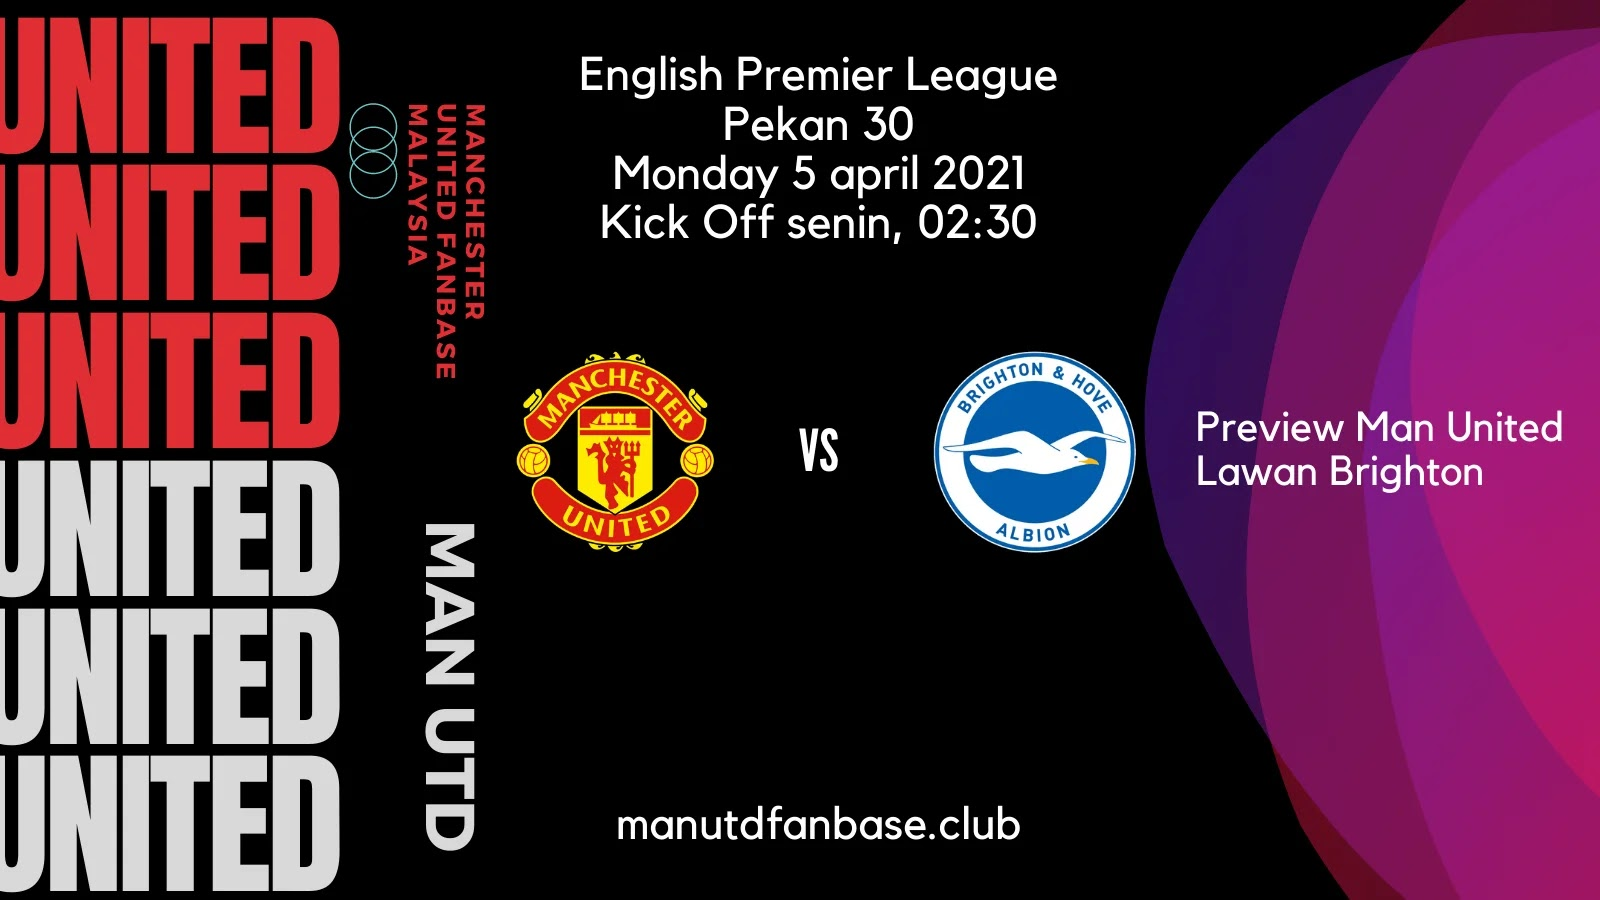 Preview Manchester United Lawan Brighton Pekan 30 PL